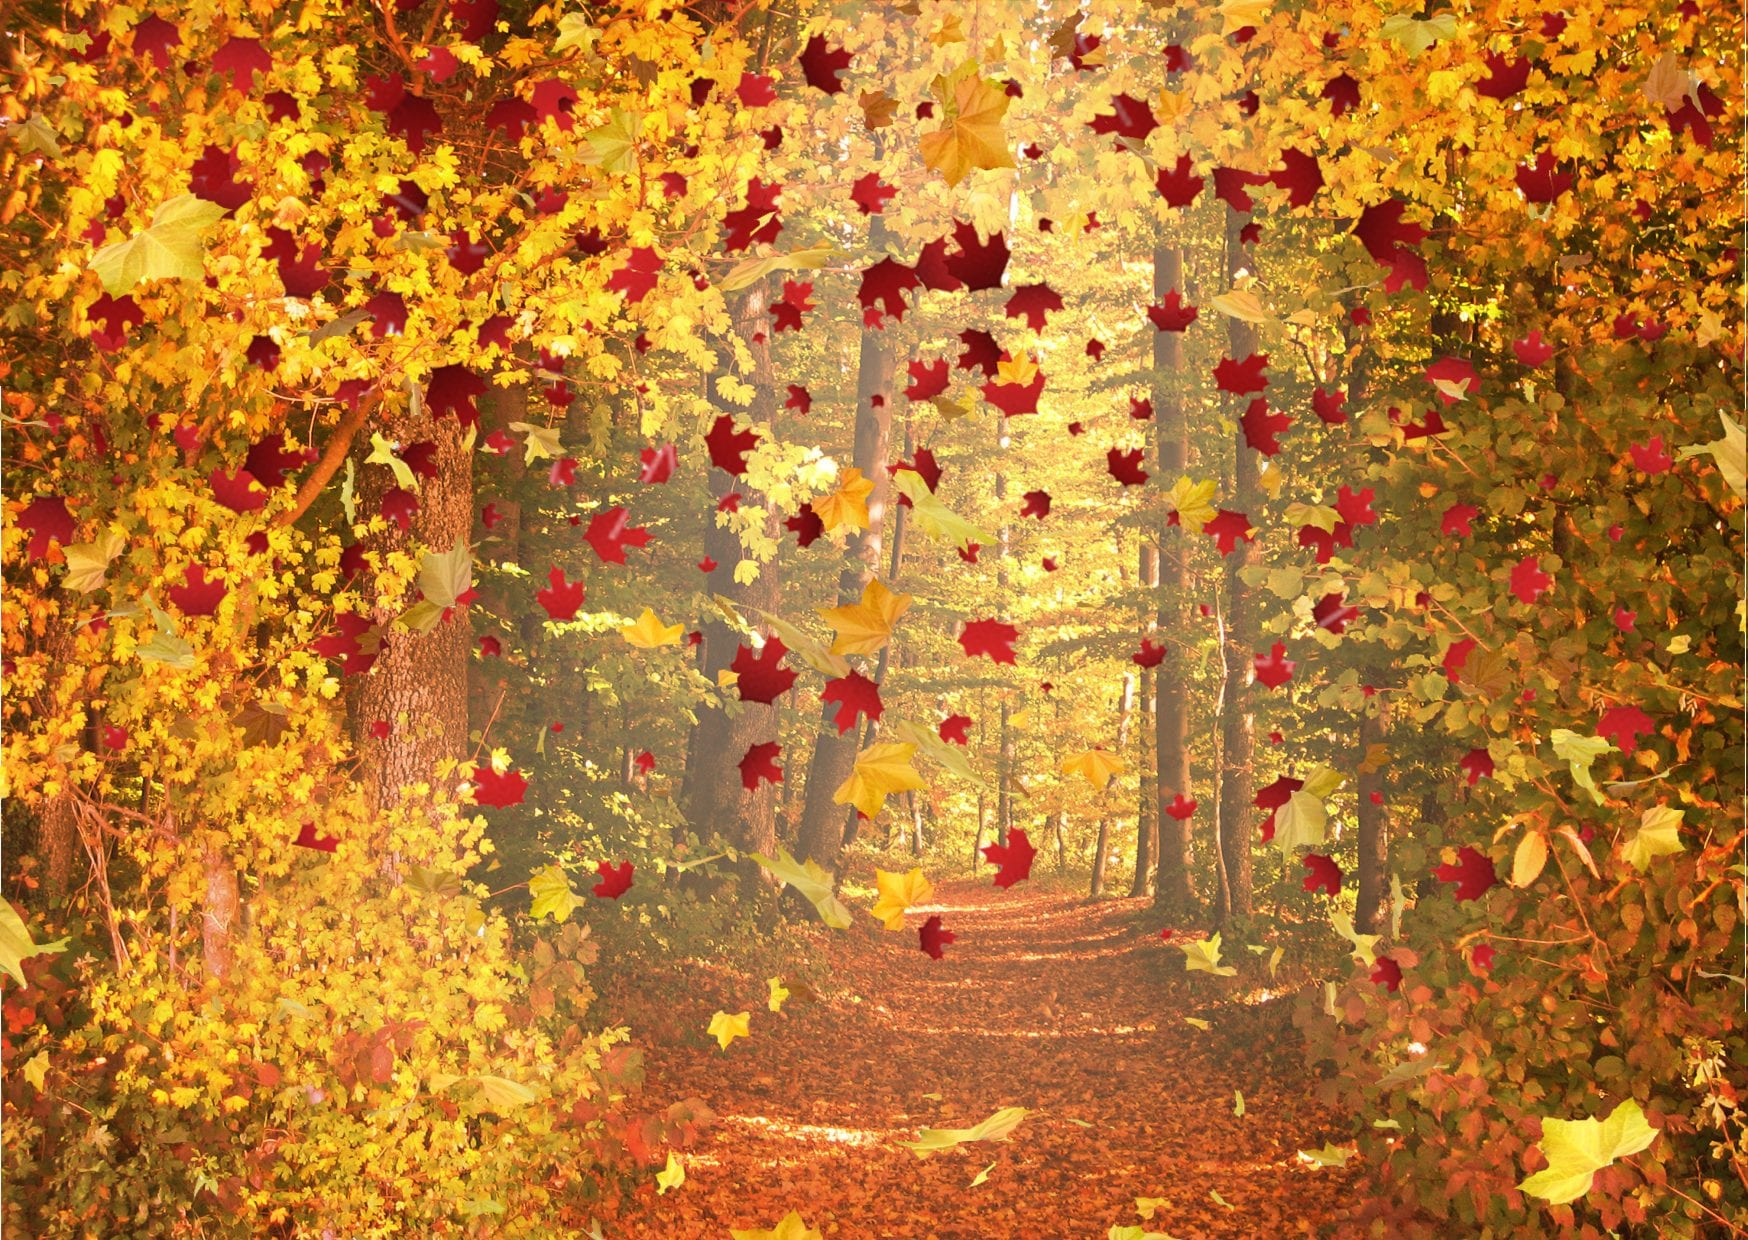 Fall | A nature poem by Mystqx Skye at UpDivine